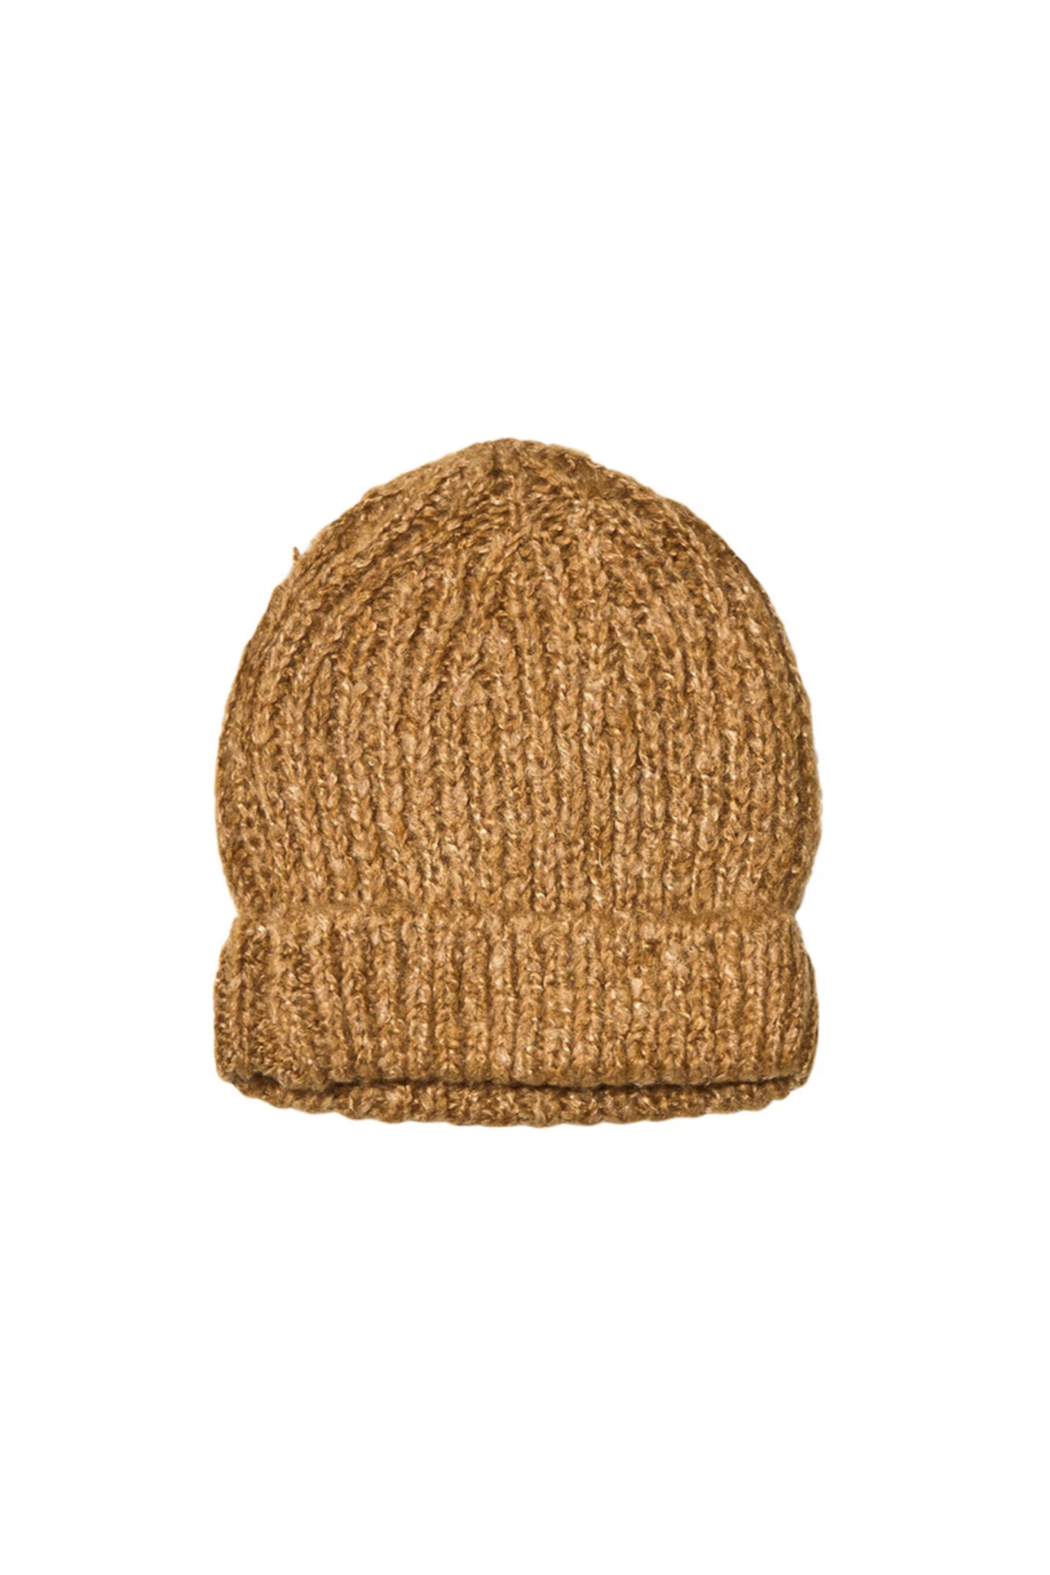 Rylee & Cru Adult Beanie In Caramel - Front Cropped Image